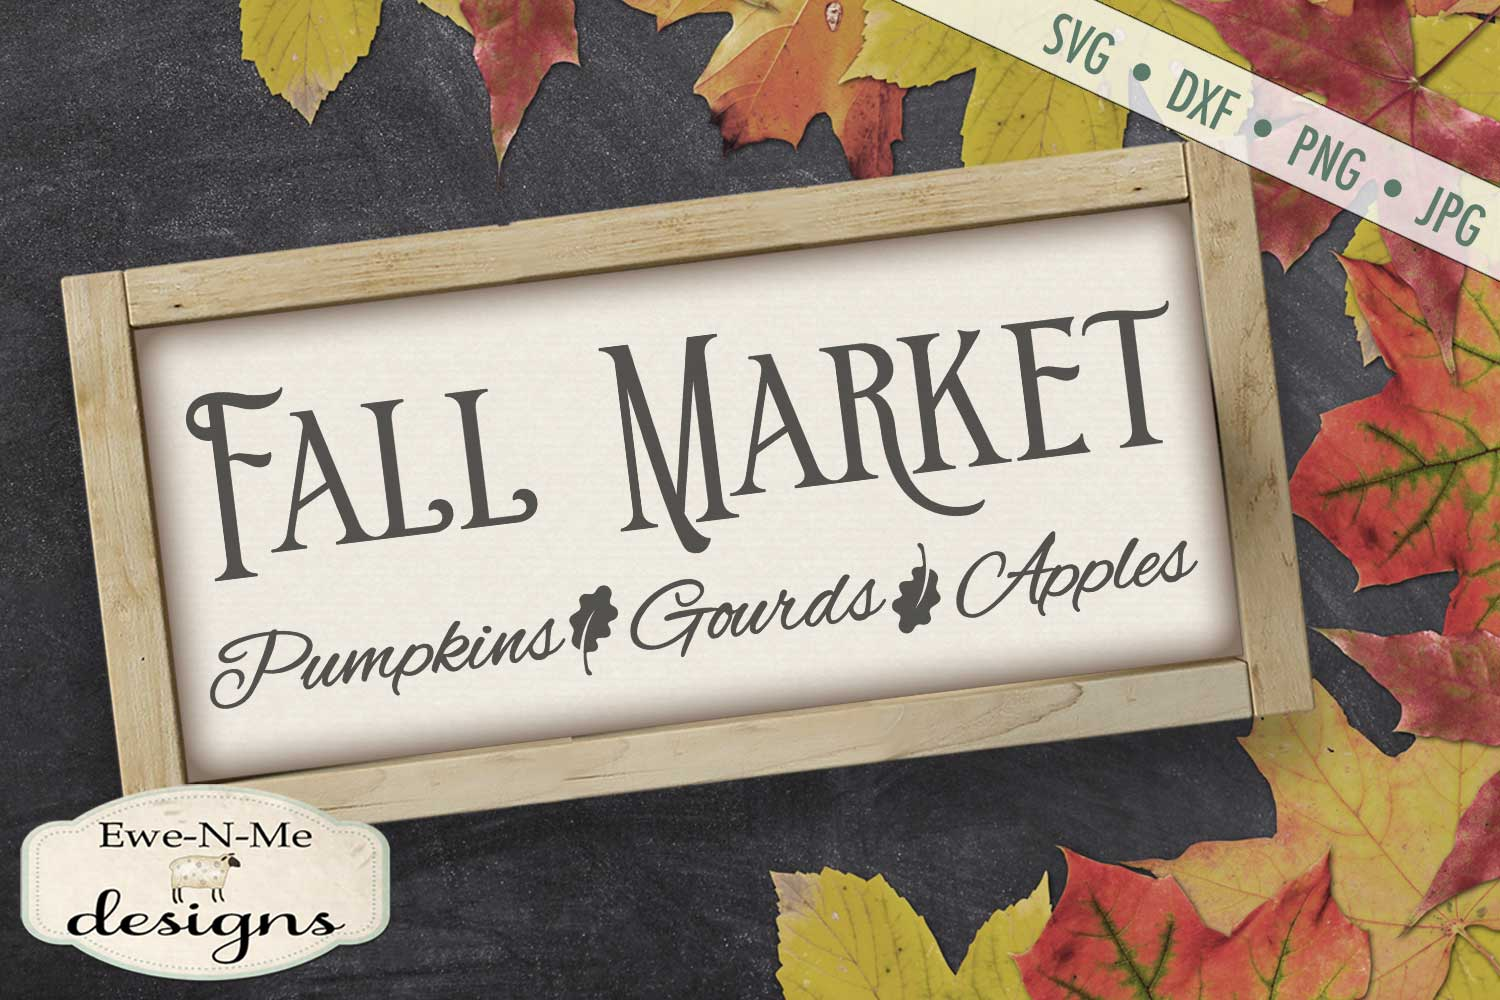 Fall Market - Pumpkins Gourds Apples - Autumn - SVG DXF example image 1